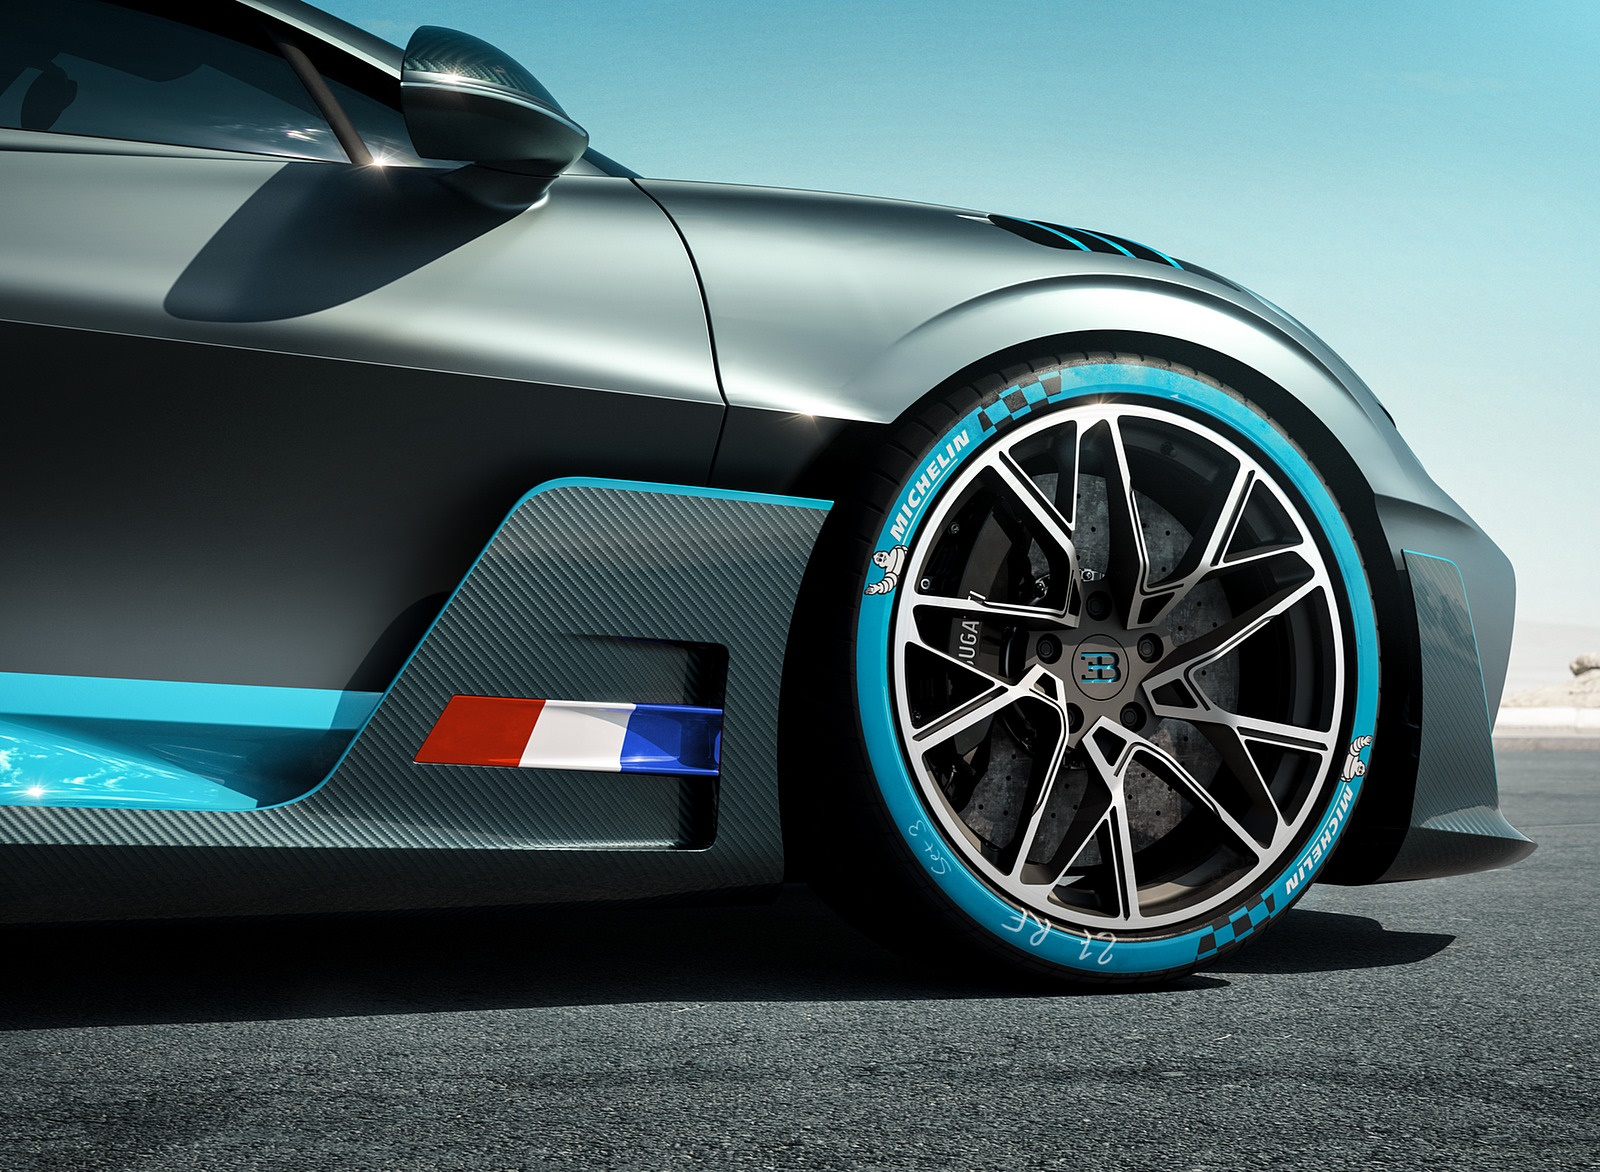 2019 Bugatti Divo Wheel Wallpaper (11)